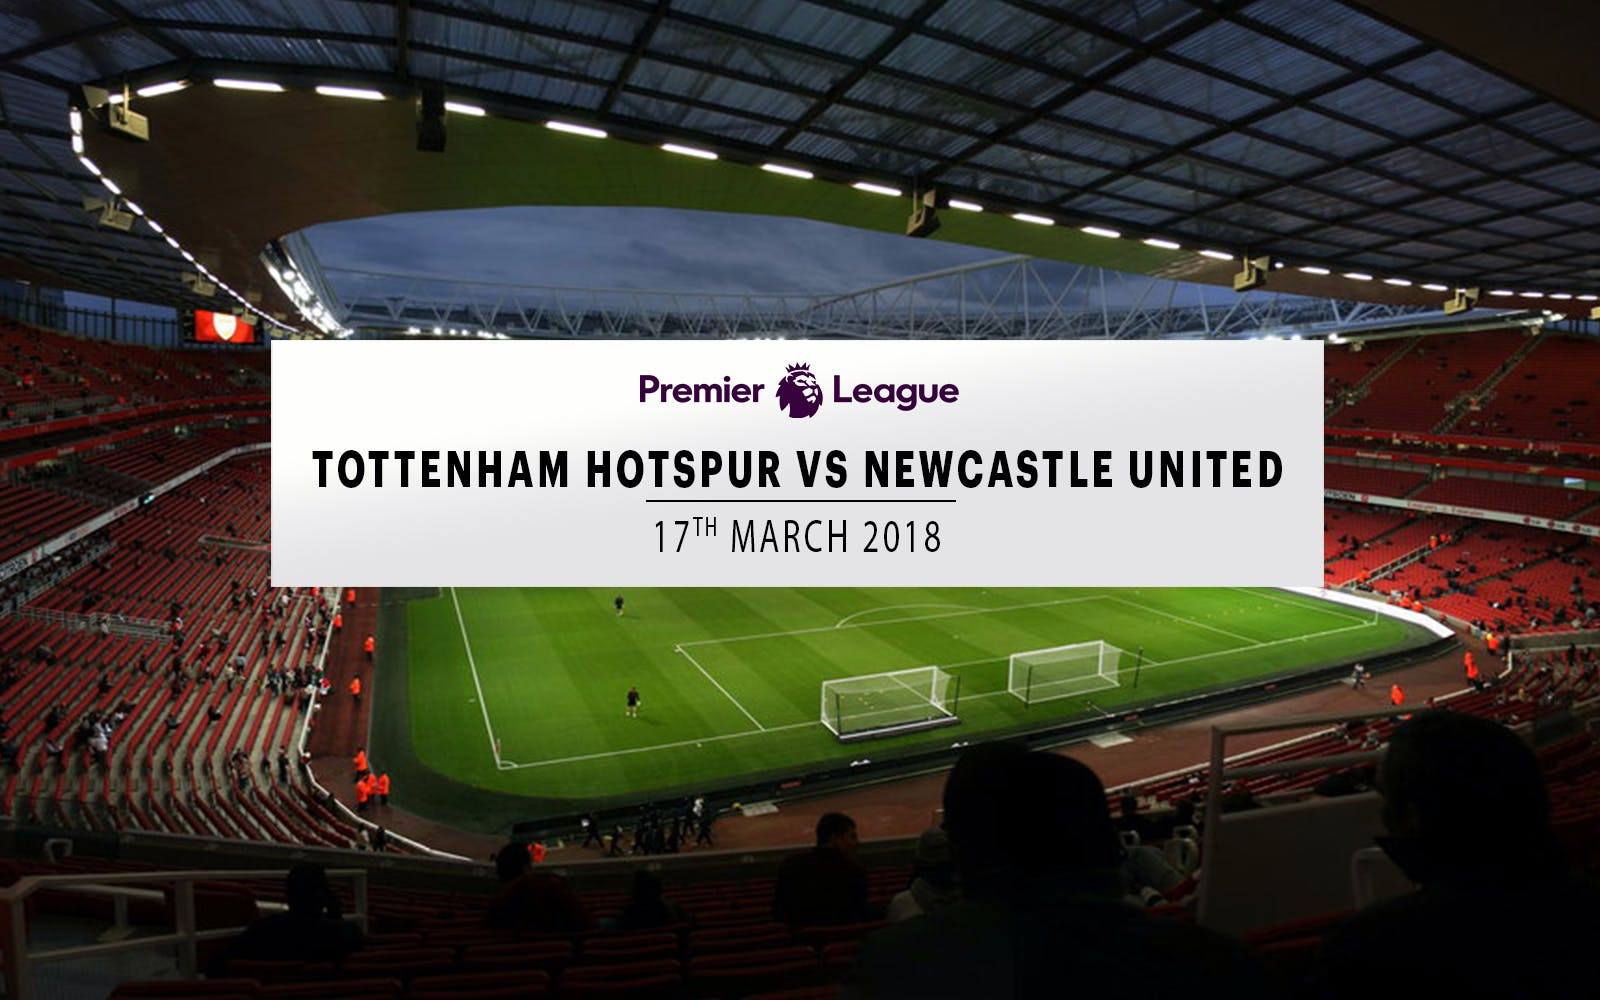 tottenham hotspur vs newcastle united - 17th march 2018-1